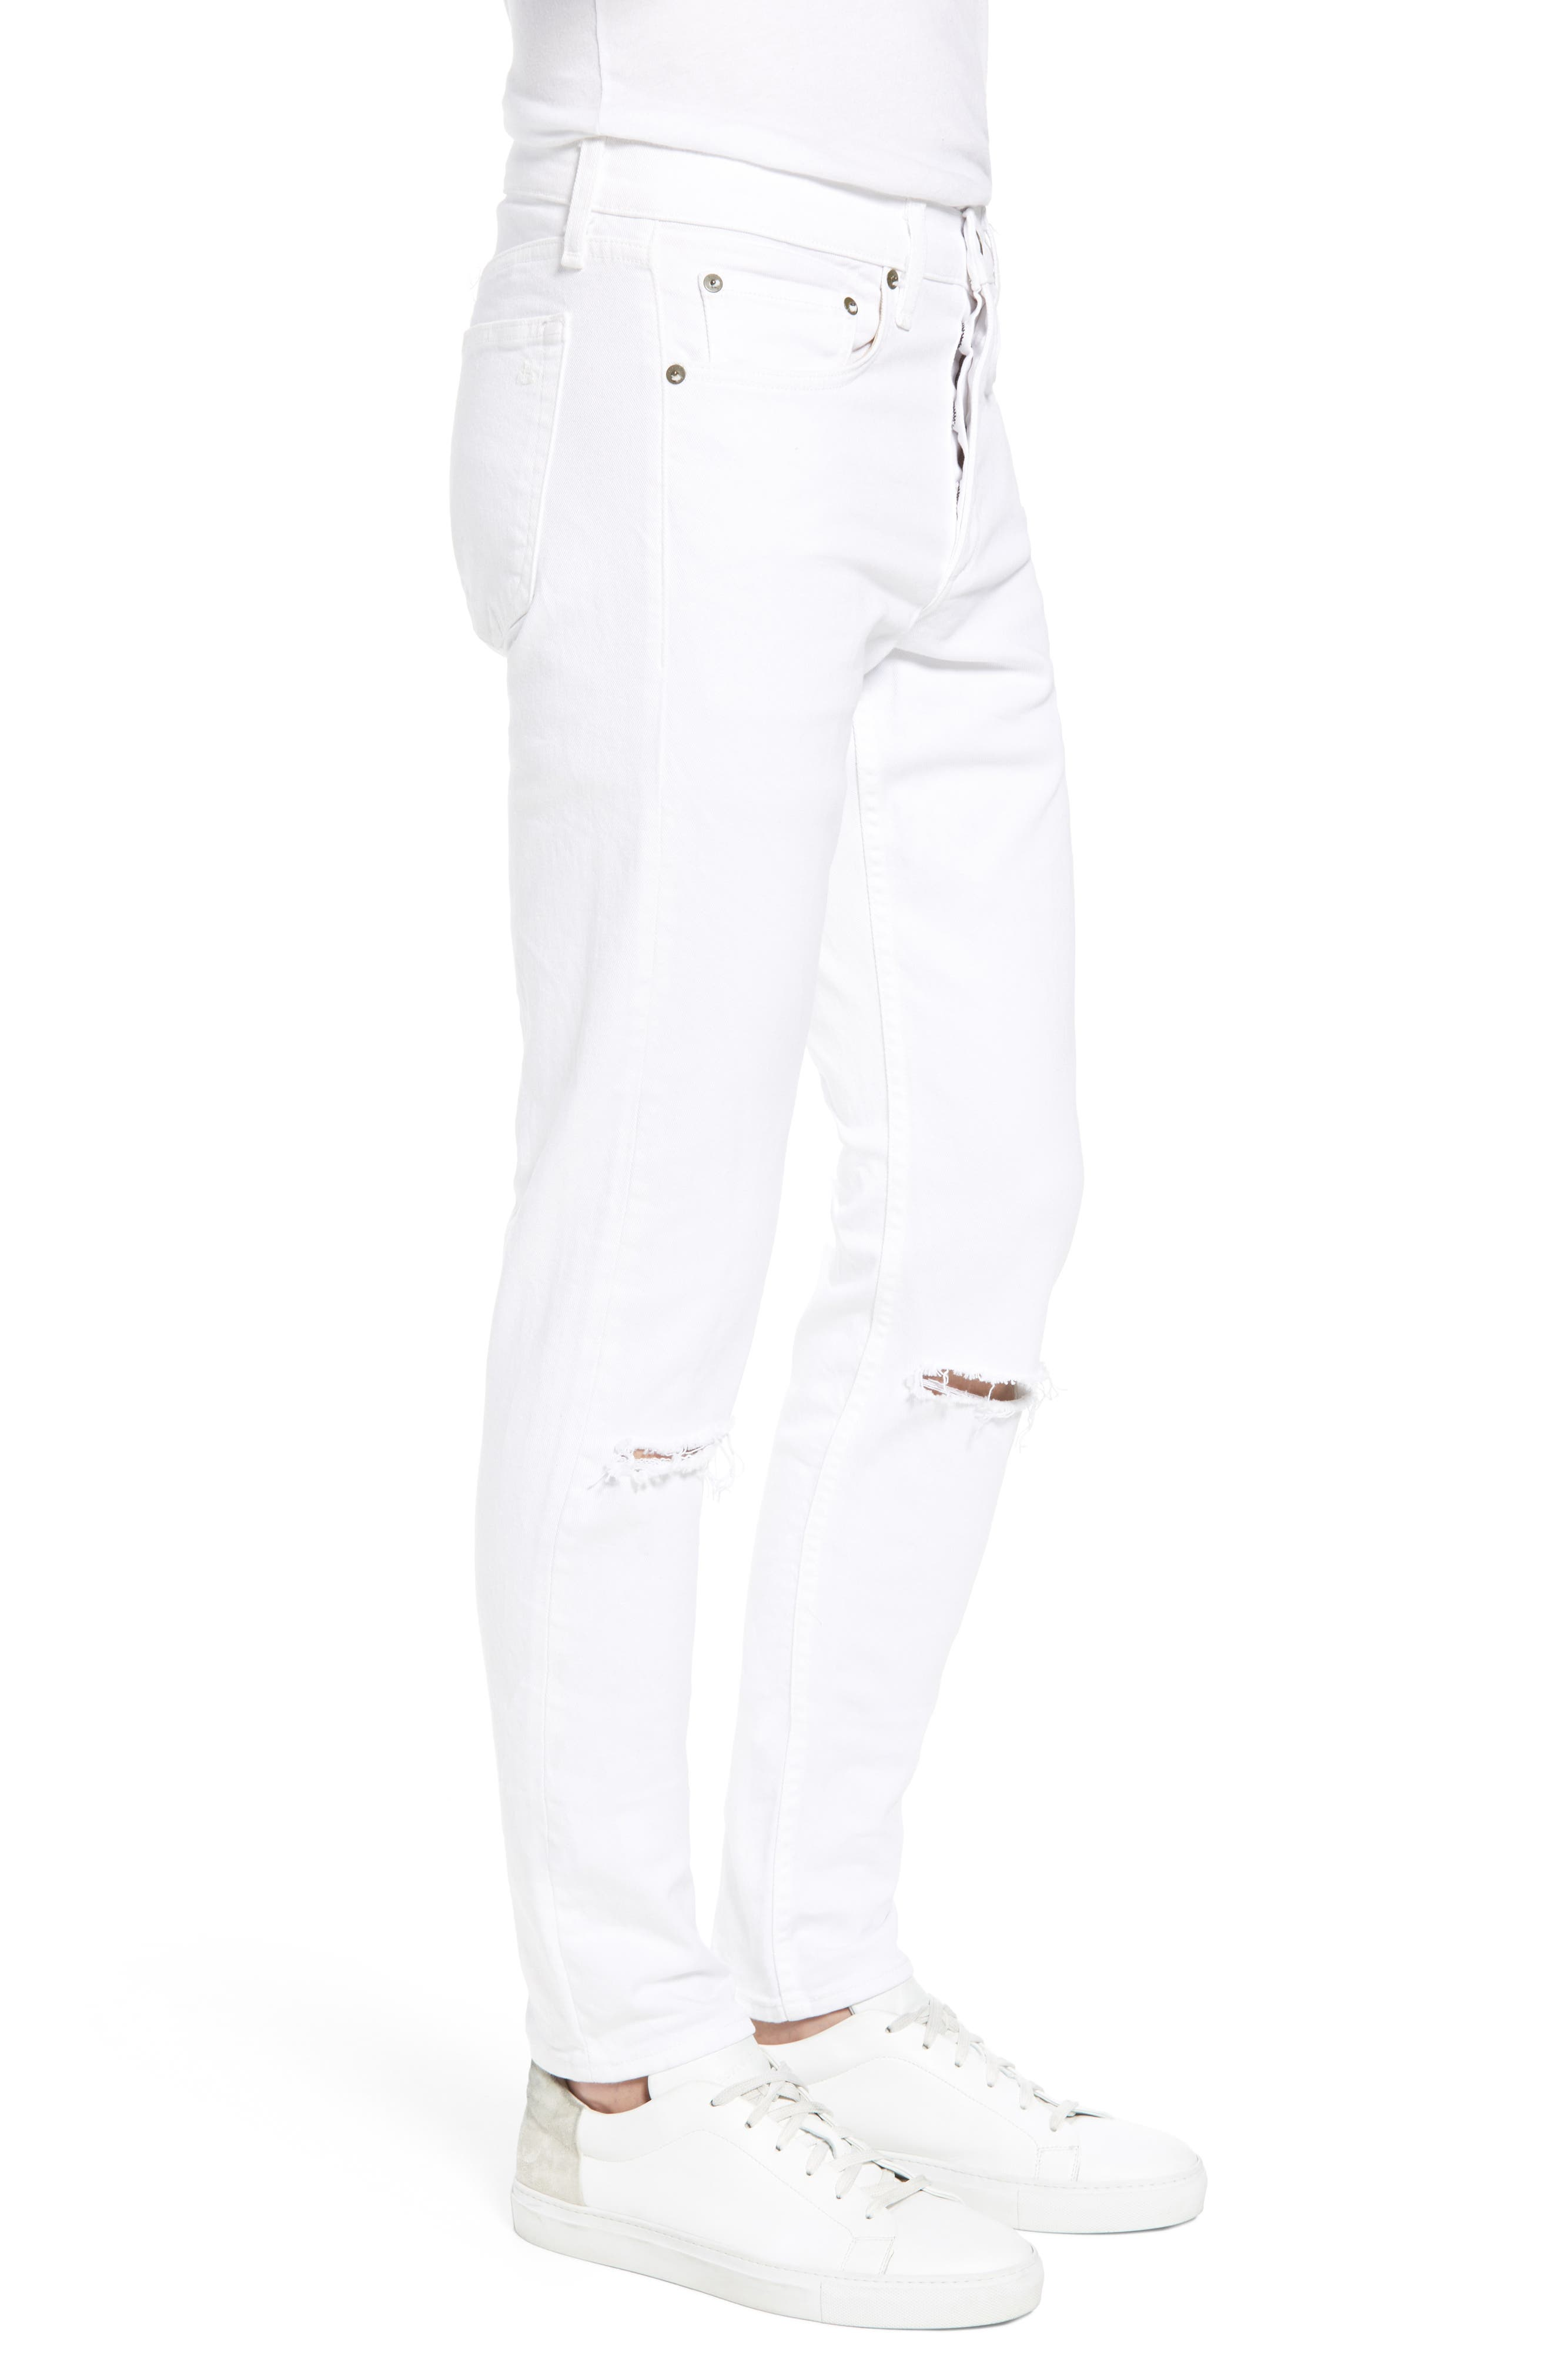 Fit 1 Skinny Fit Jeans,                             Alternate thumbnail 3, color,                             White W/ Holes